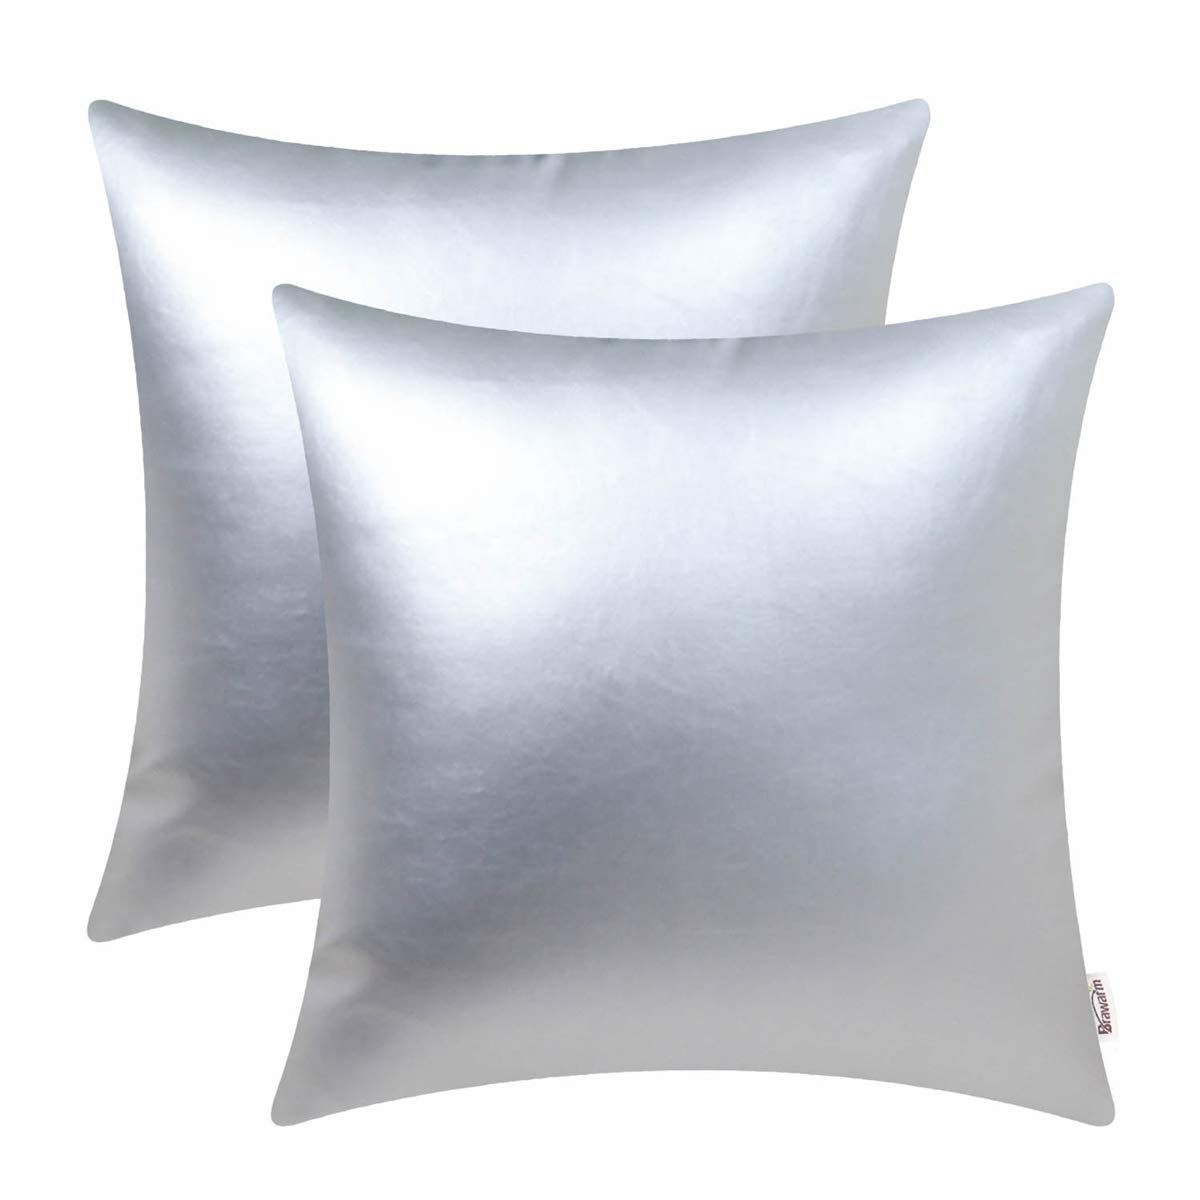 BRAWARM Pack of 2 Cozy Throw Pillow Covers Cases for Couch Sofa Home Decoration Solid Dyed Soft Faux Leather Both Sides 24 X 24 Inches Silver